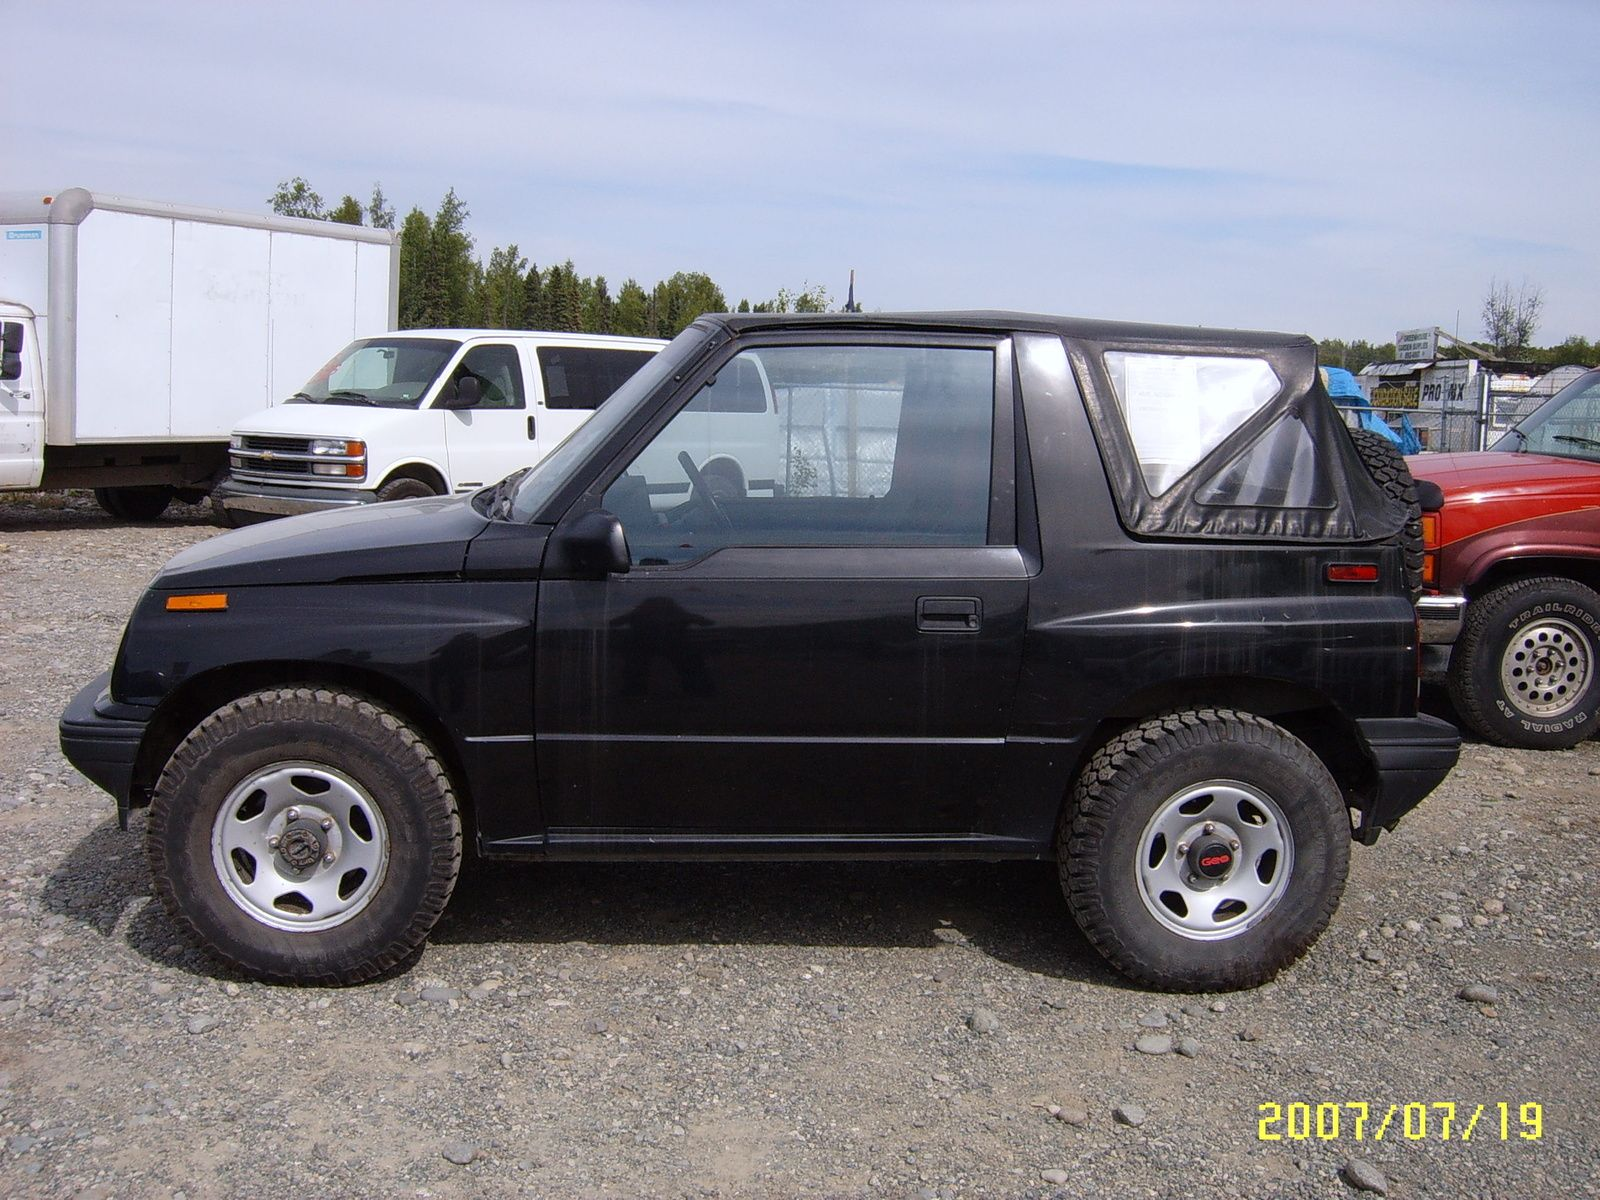 1996 Geo Tracker 4 Dr STD 4WD SUV | Geo | Geo, Cars, Dream ...